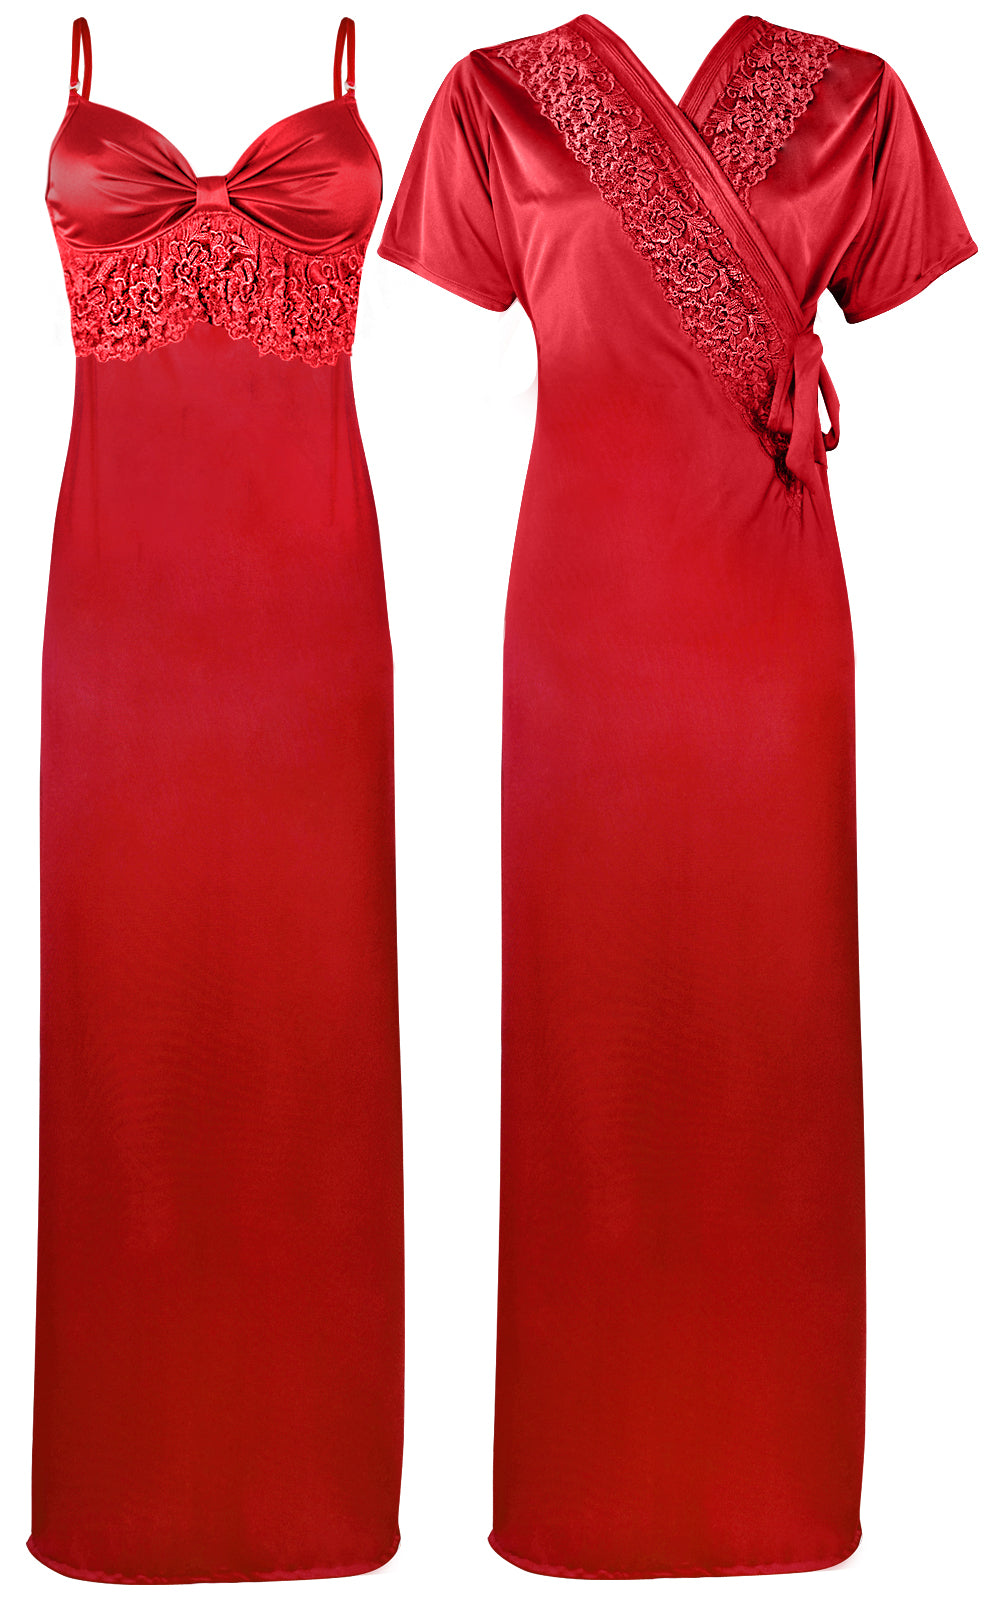 Colour: Red 2 Pcs Strappy Lace Long Nighty With Robe Size: One Size